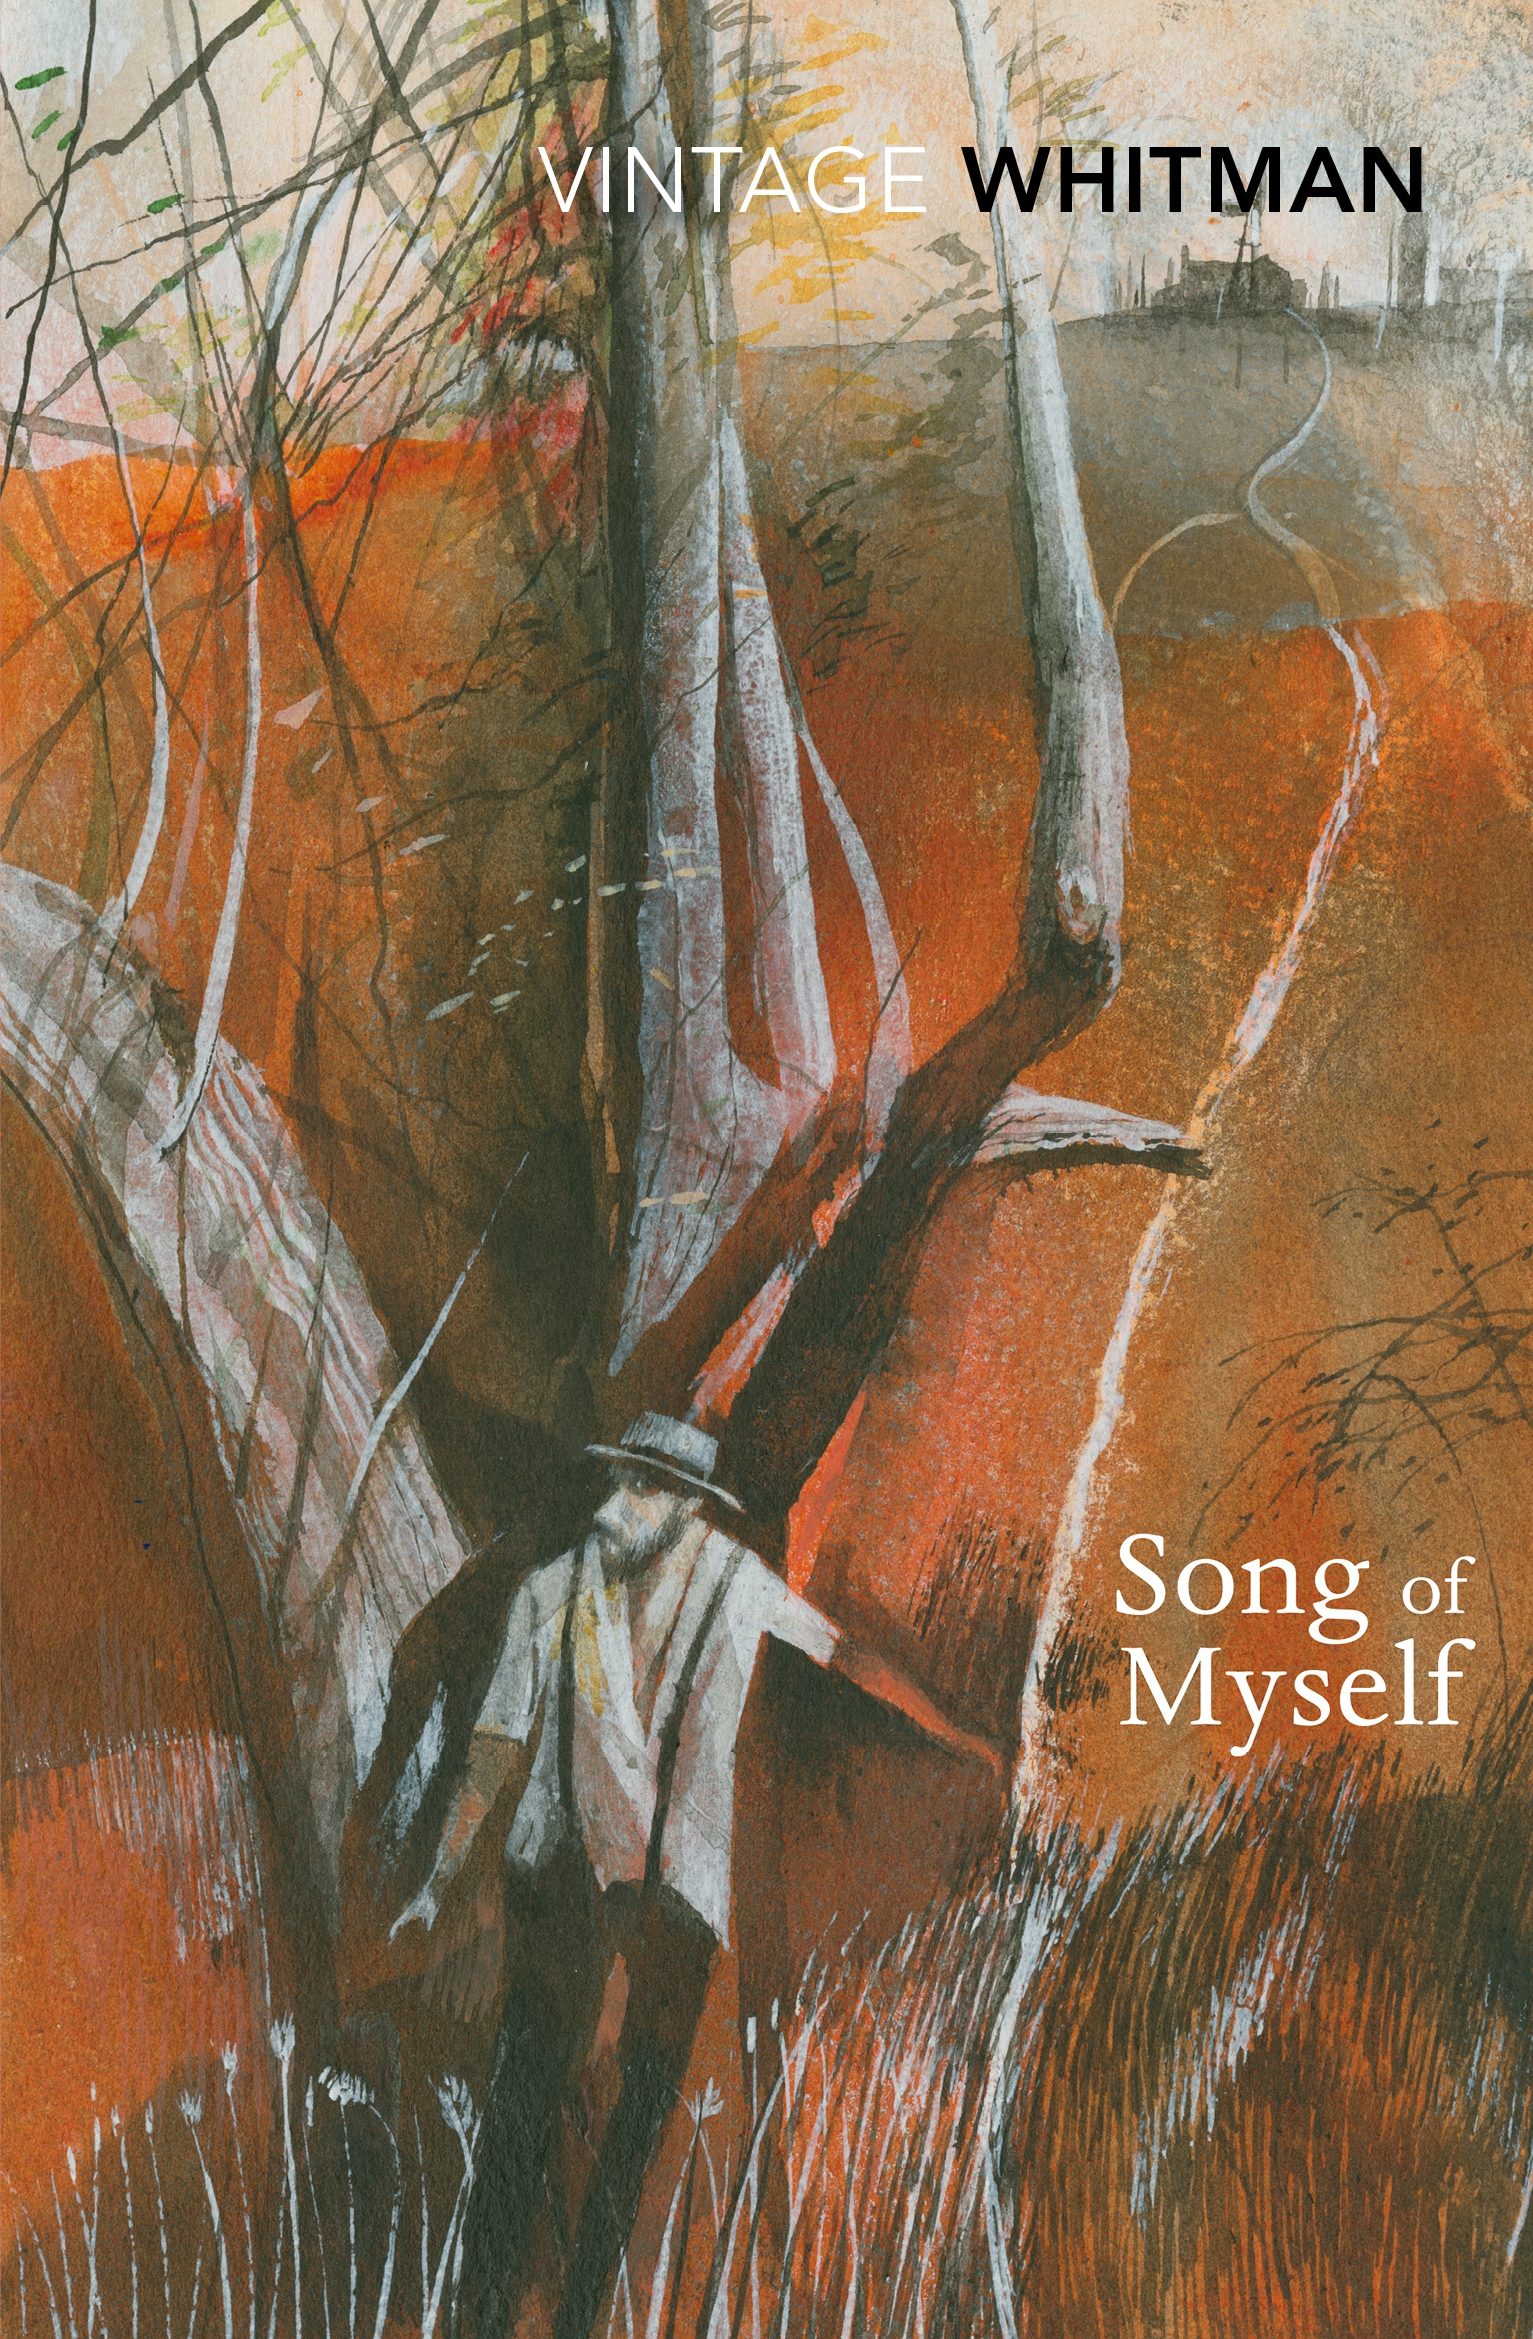 a literary analysis of song of myself by walt whitman Song of myself is a poem by walt whitman's this poem presents a continual stream of human consciousness, where he attempts to analyze death as natural and transformative process, which ought to occur to everybody.